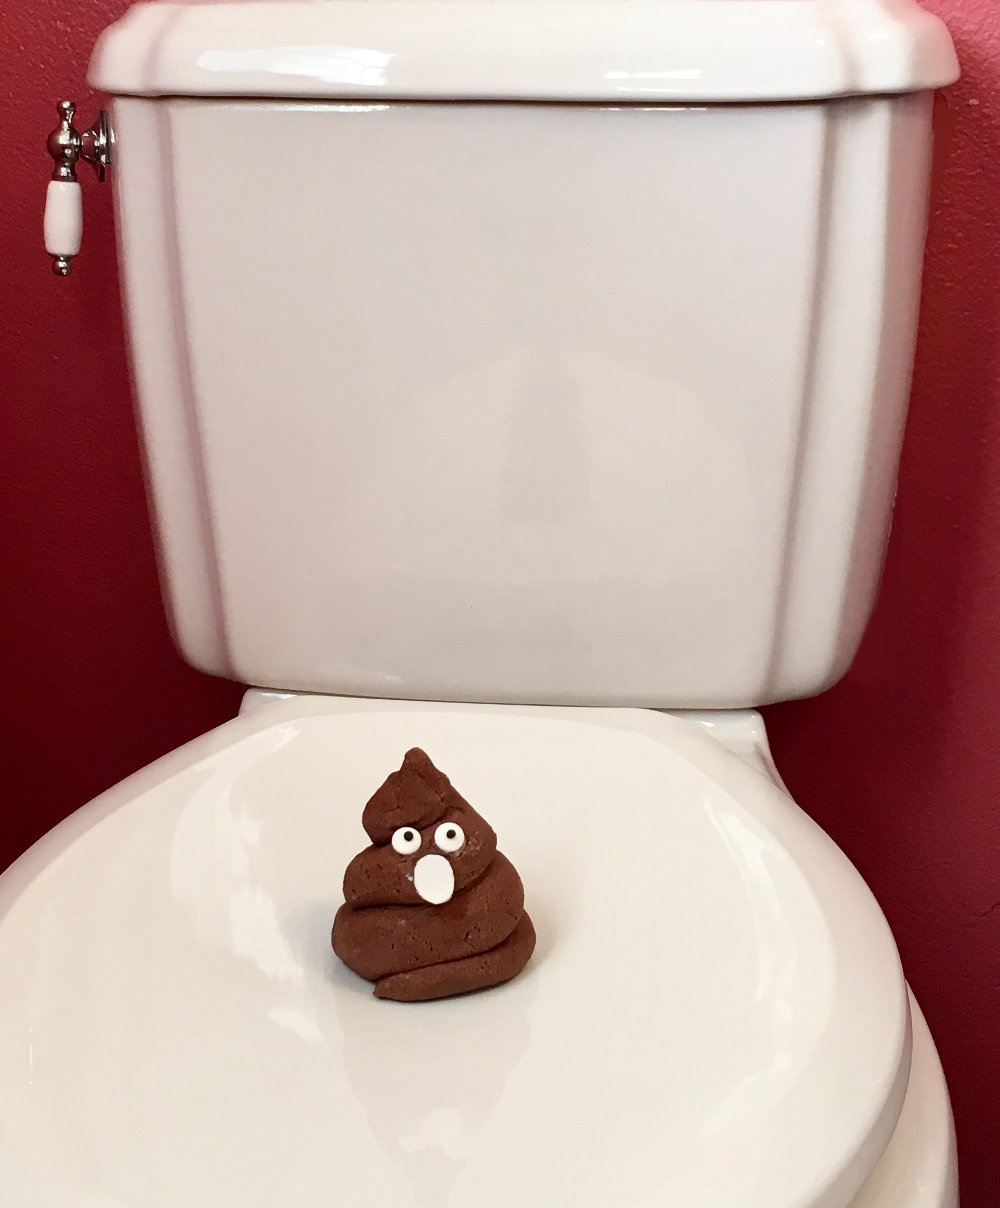 These DIY poop emoji bubble bars are sure to make bath time a little more interesting! Inspired by the pile of poo emoji, this bubble bar mimics the brown soft-serve ice cream shaped icon with a smile.